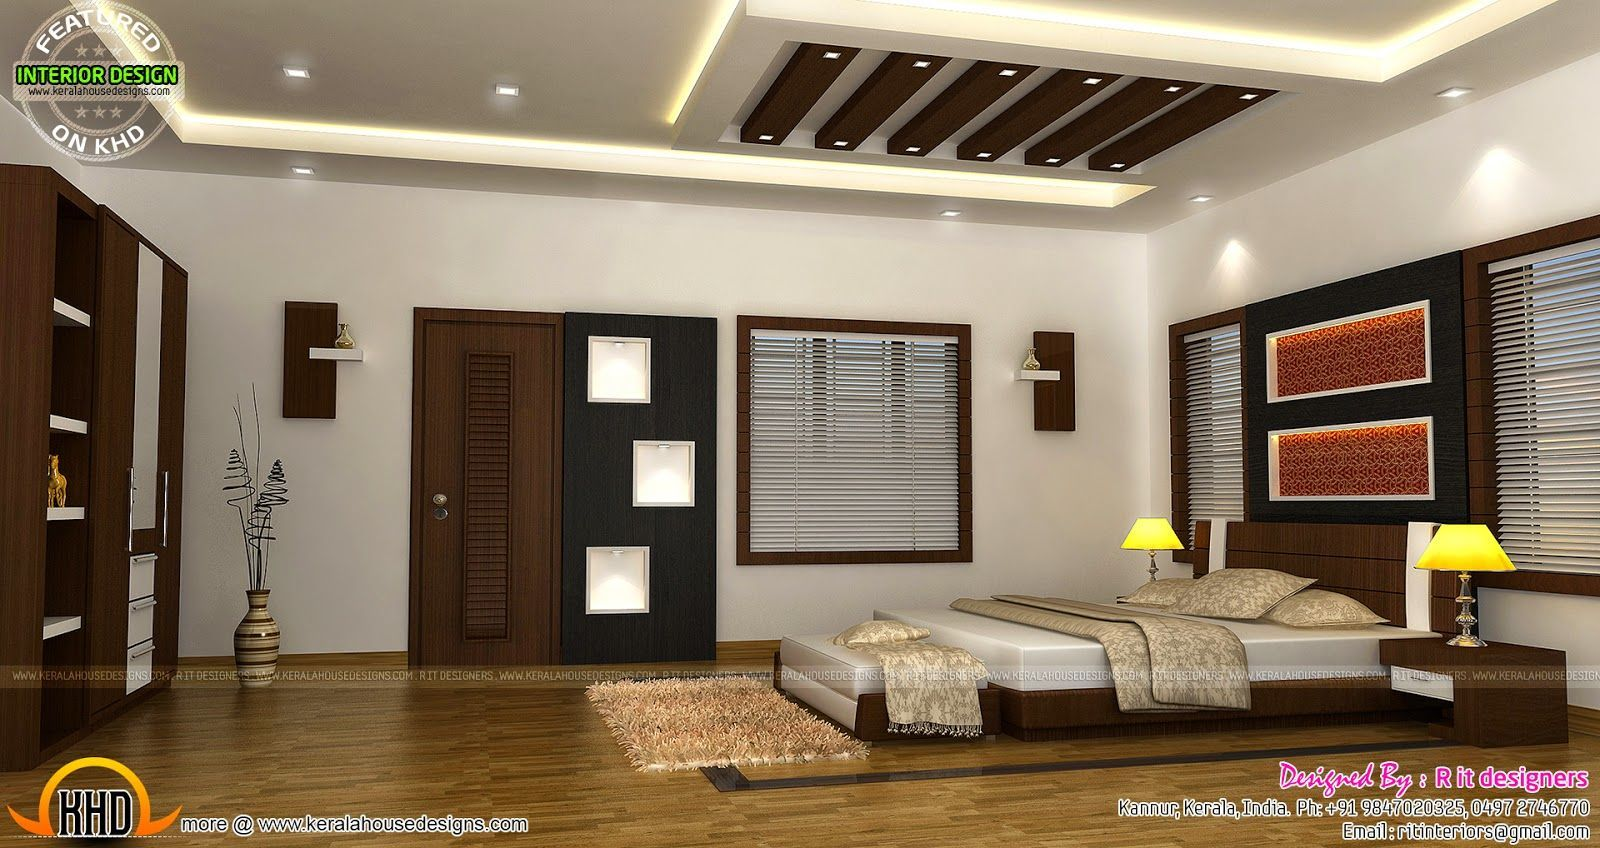 Living Room Middle Class Kerala Home Interior Design In 2020 Master Bedroom Interior Design Interior Design Classes Interior Design Bedroom